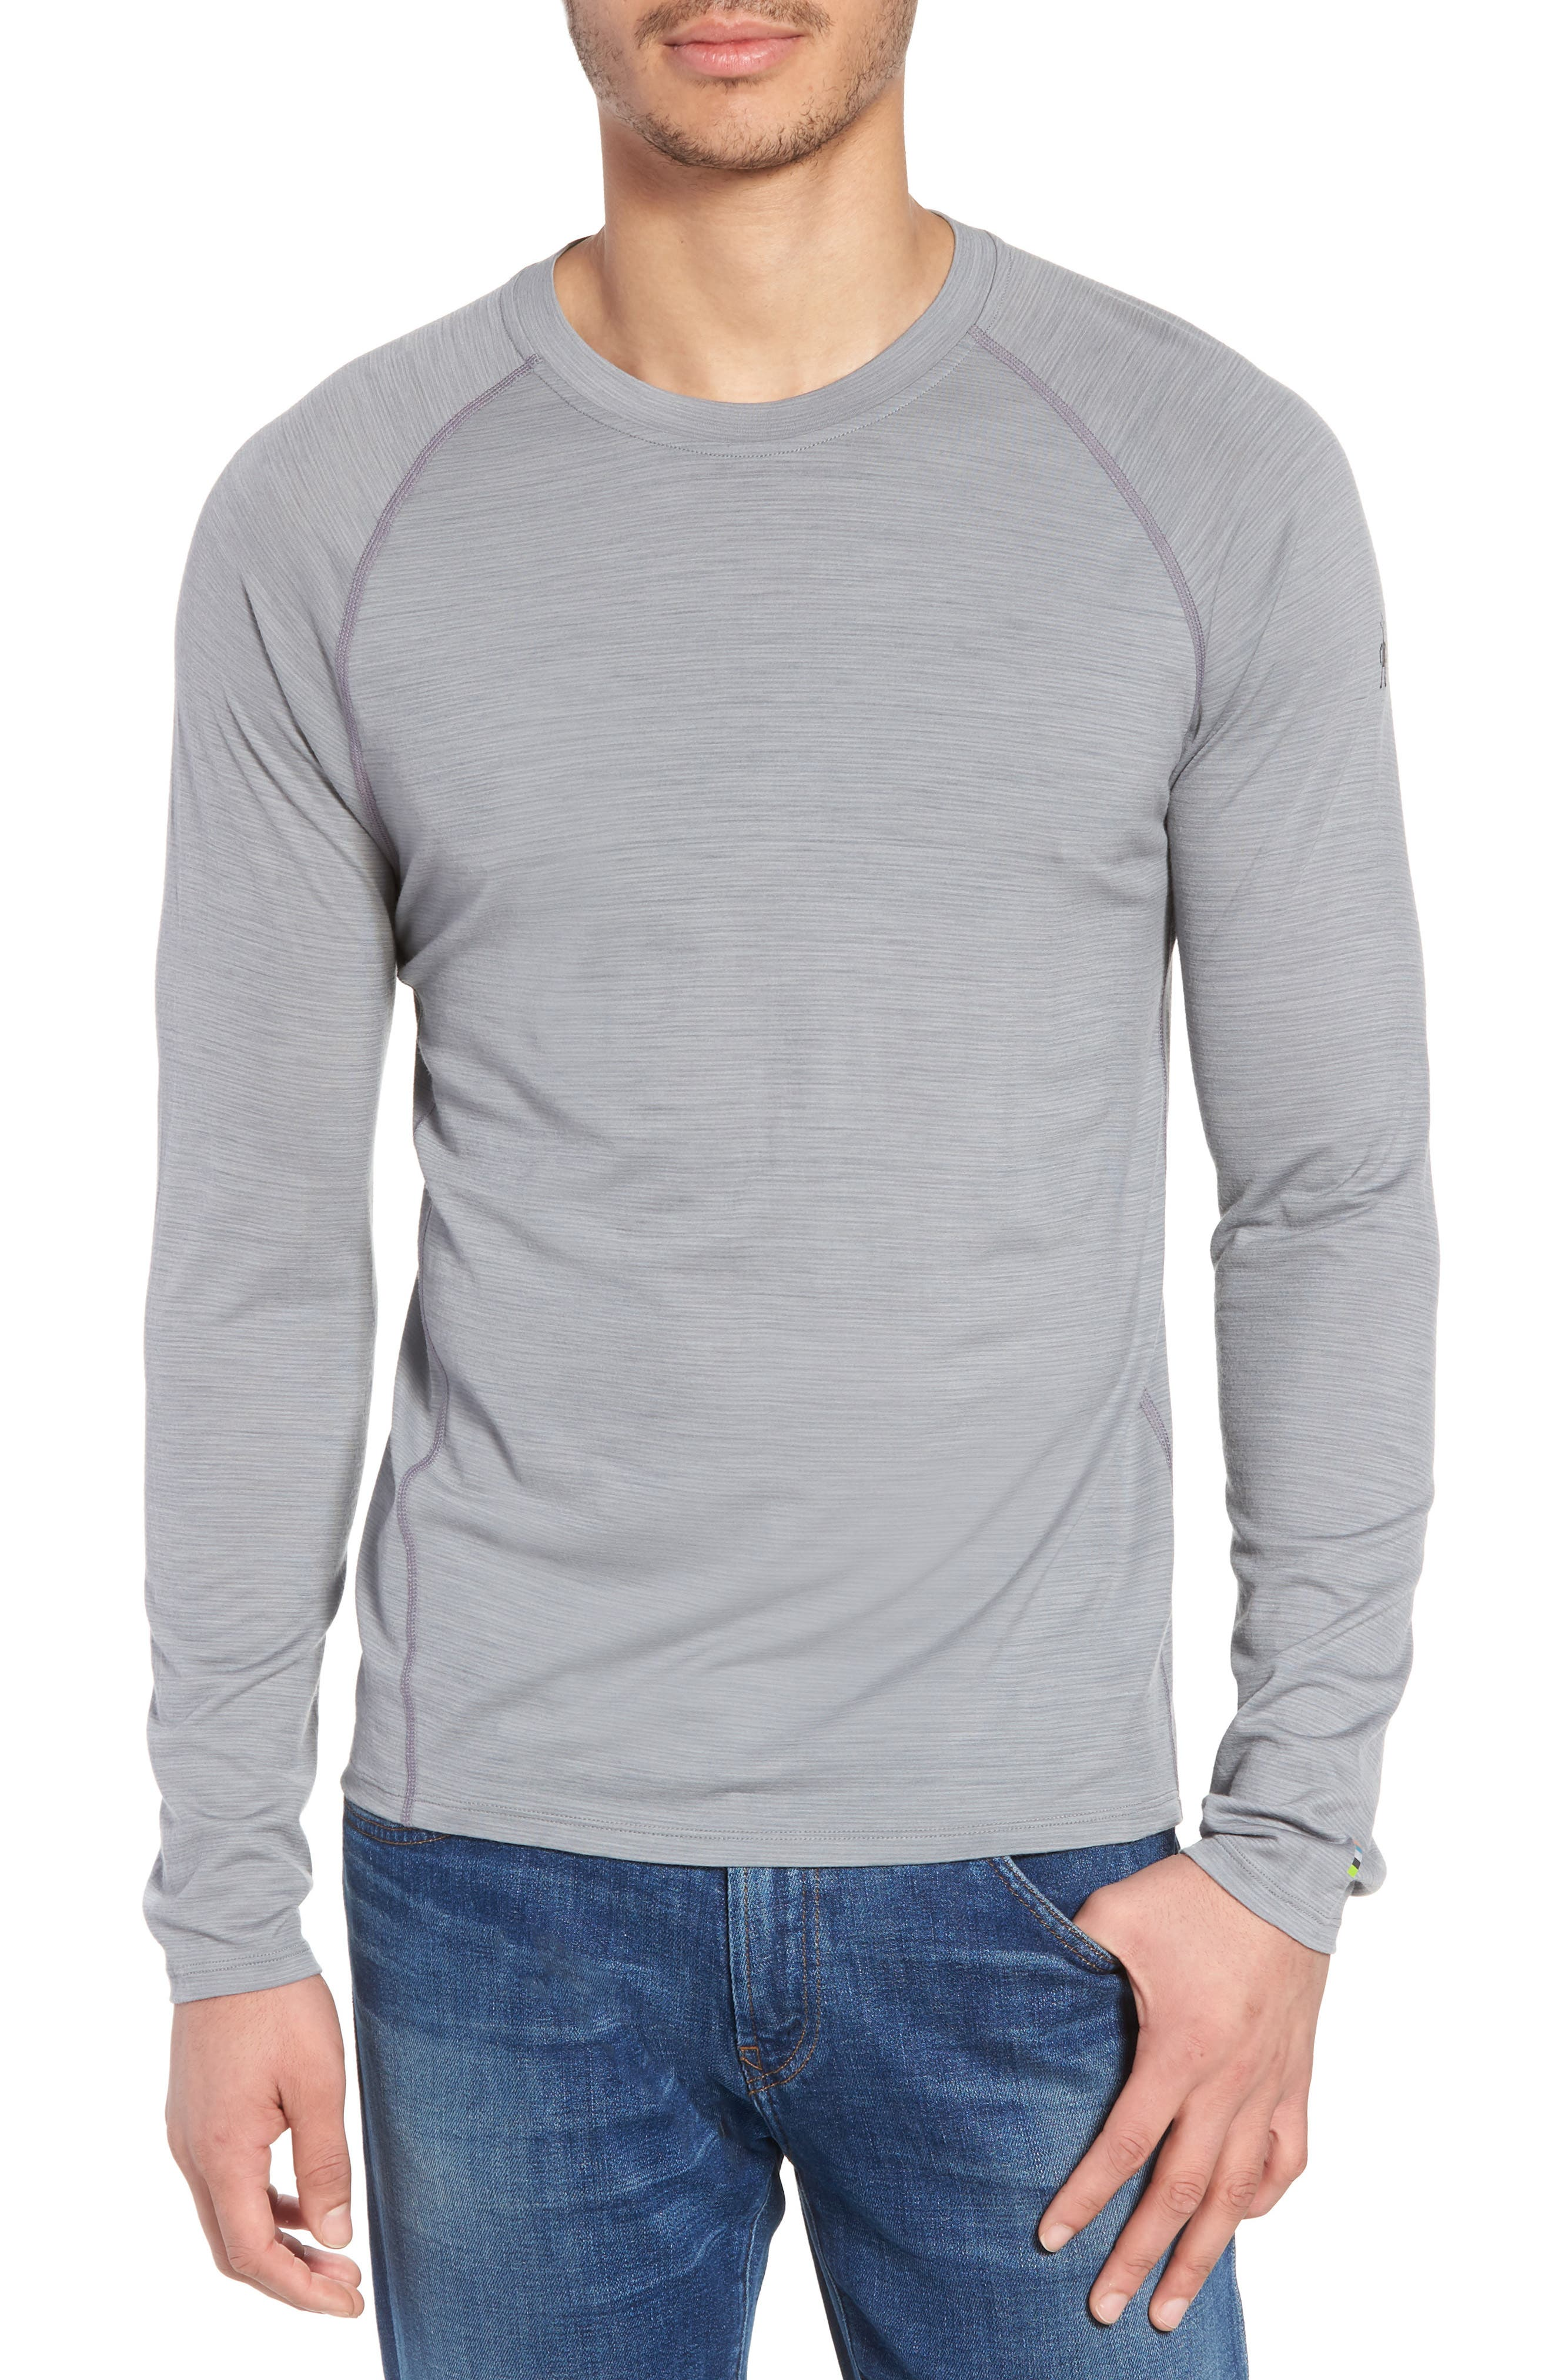 SMARTWOOL,                             Merino 150 Wool Blend Long Sleeve T-Shirt,                             Main thumbnail 1, color,                             LIGHT GREY